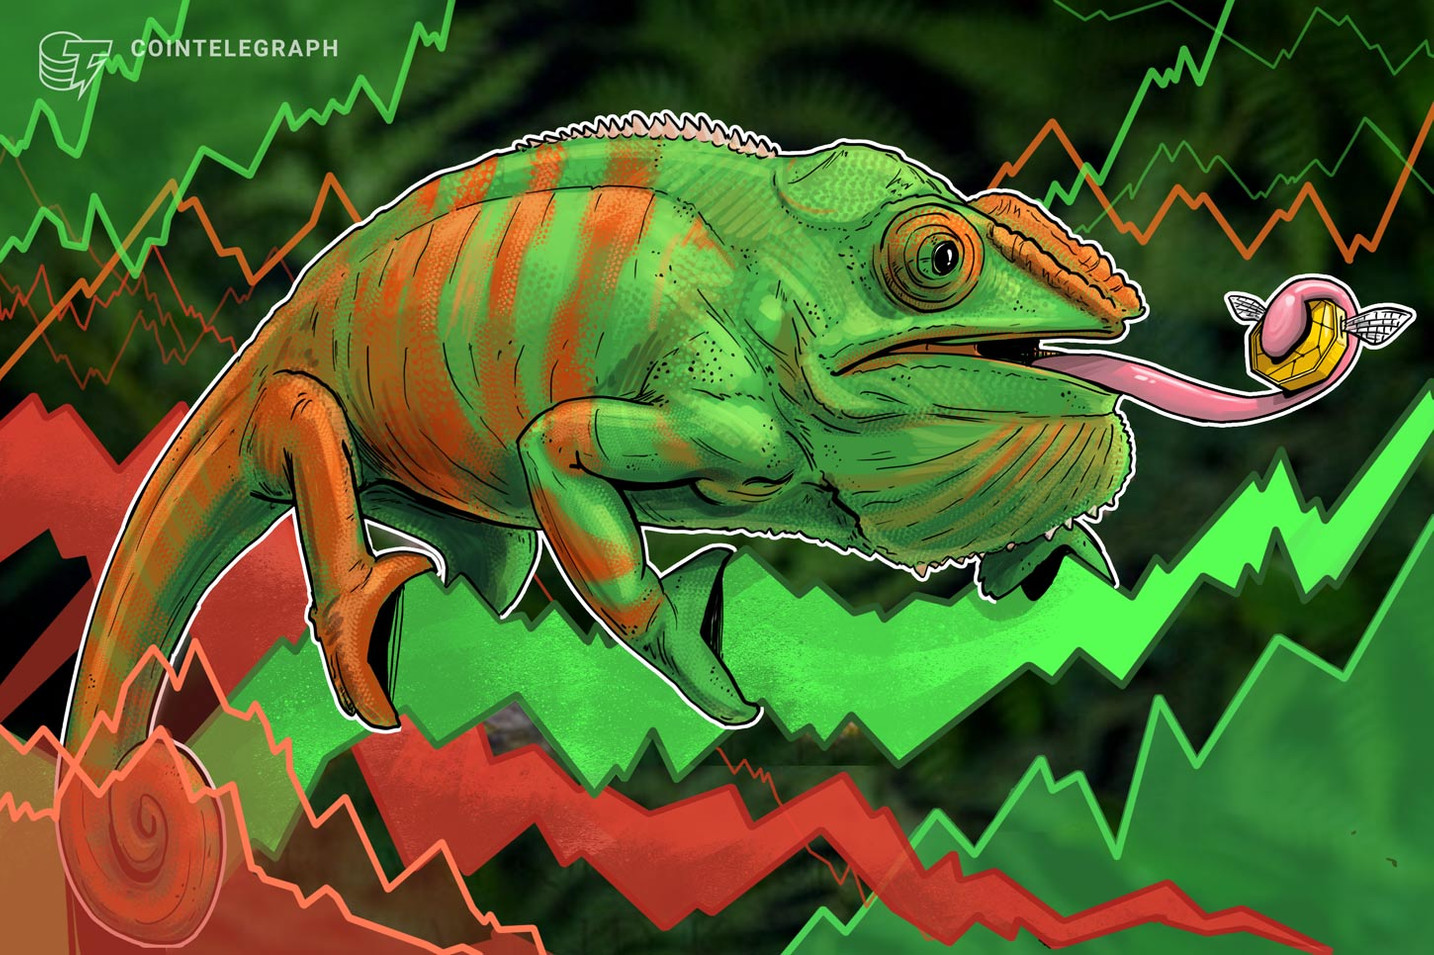 Major Cryptocurrencies in The Green as Bitcoin Rallies Over $8,100